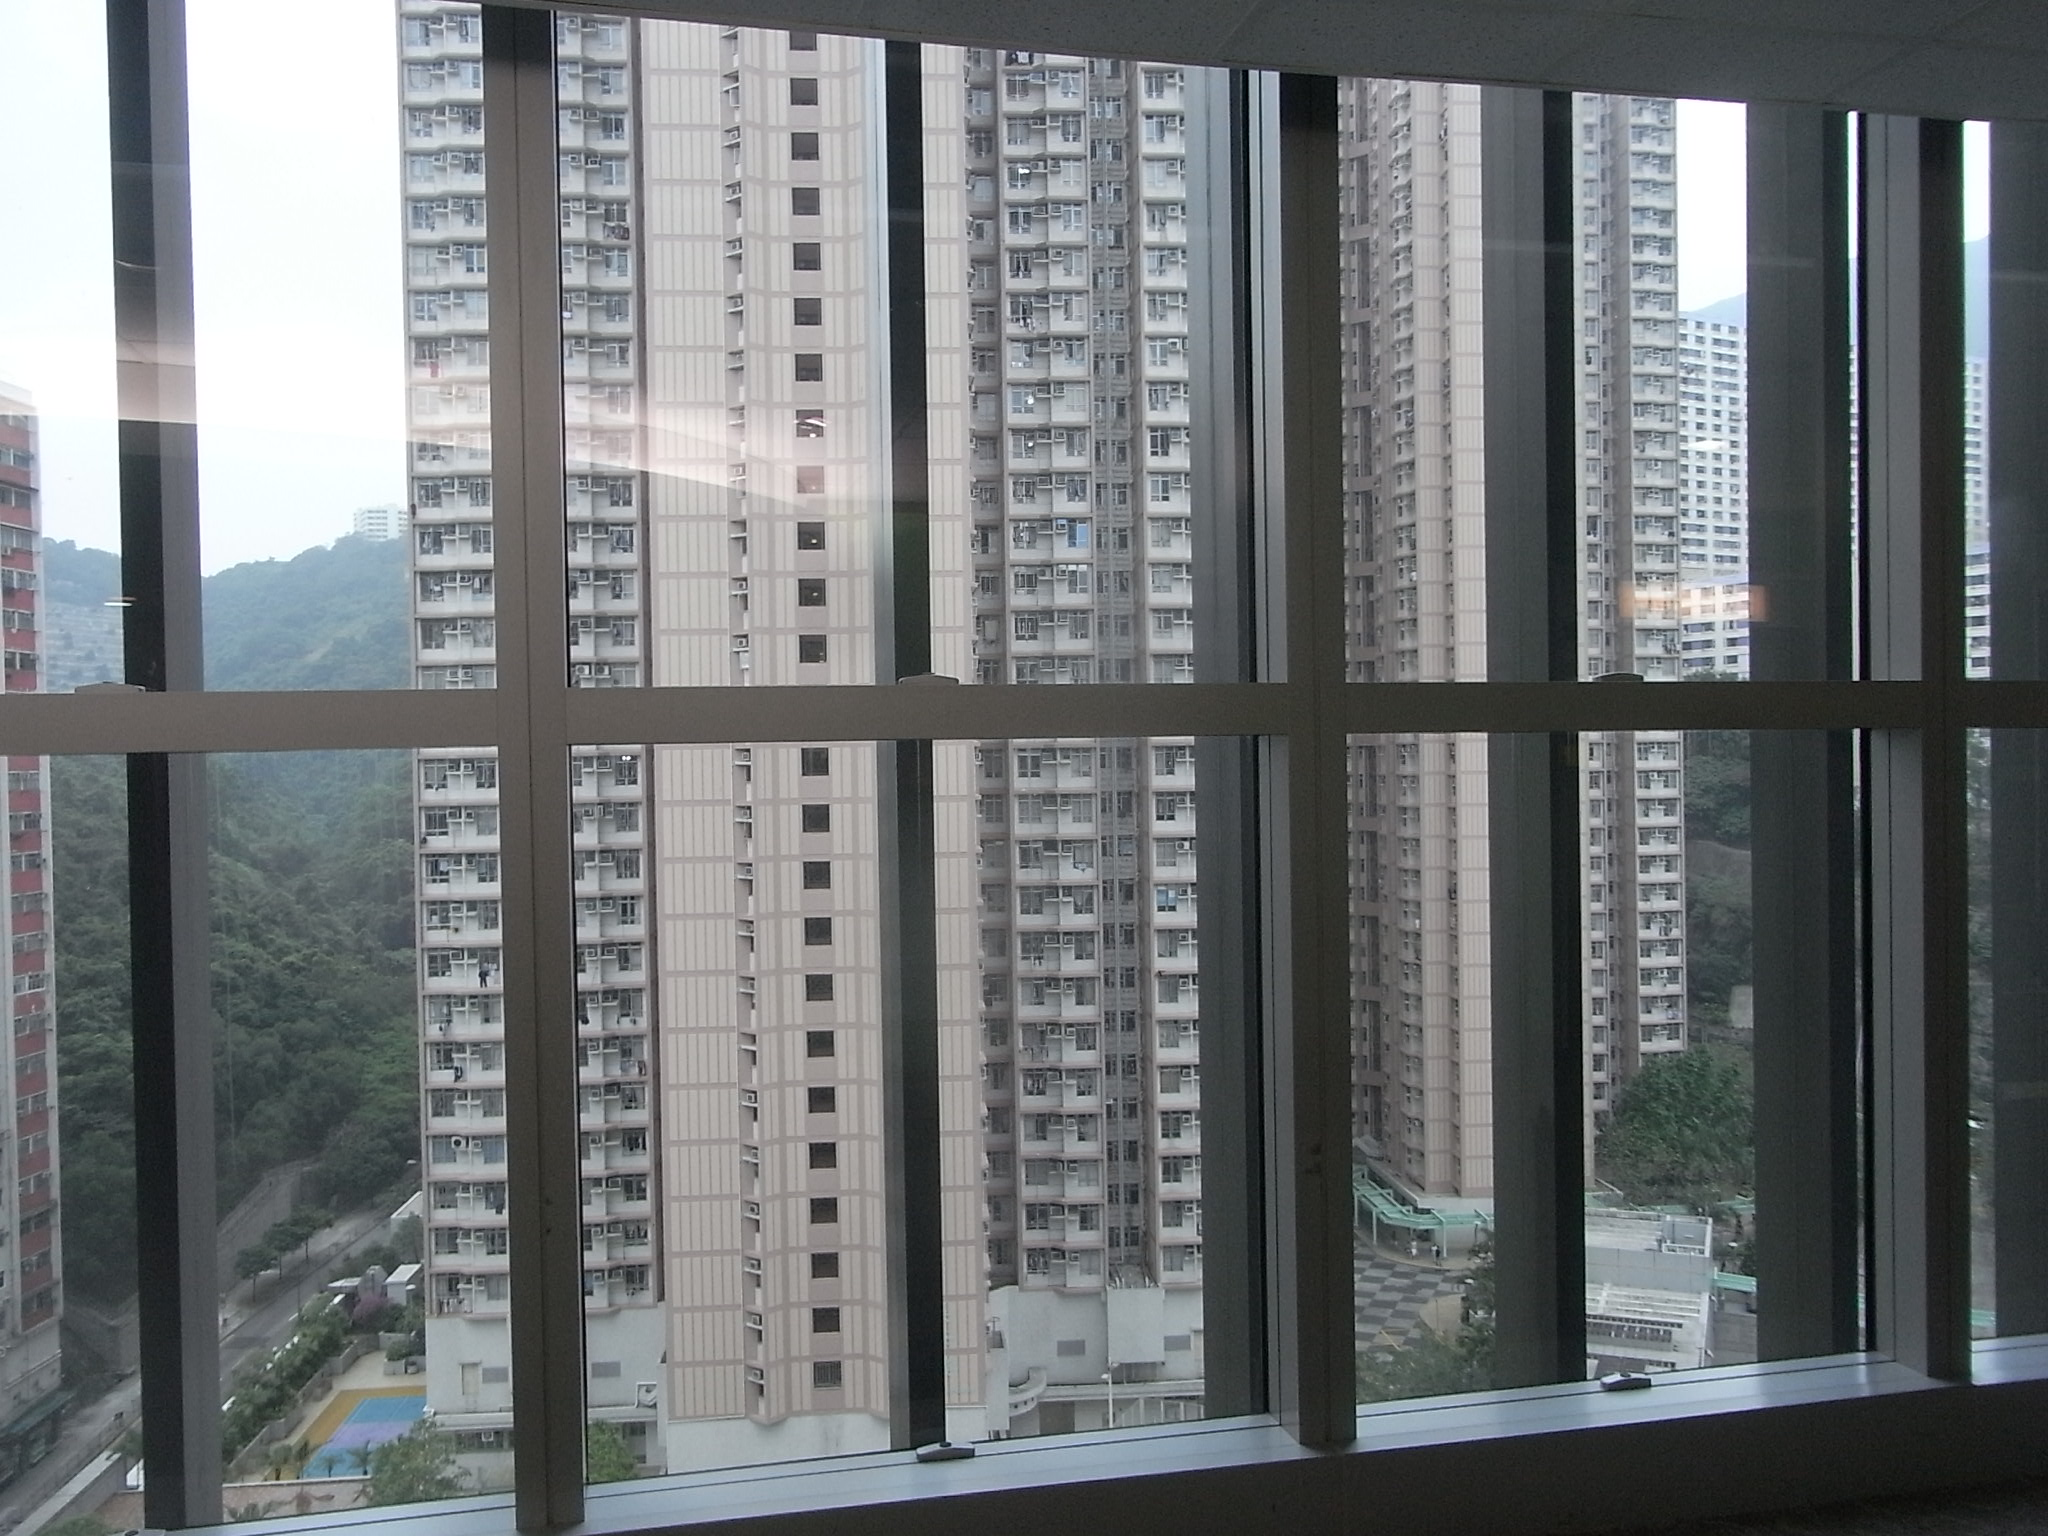 File:HK 柴灣 Chai Wan 青年廣場 Youth Square window view nearby ...